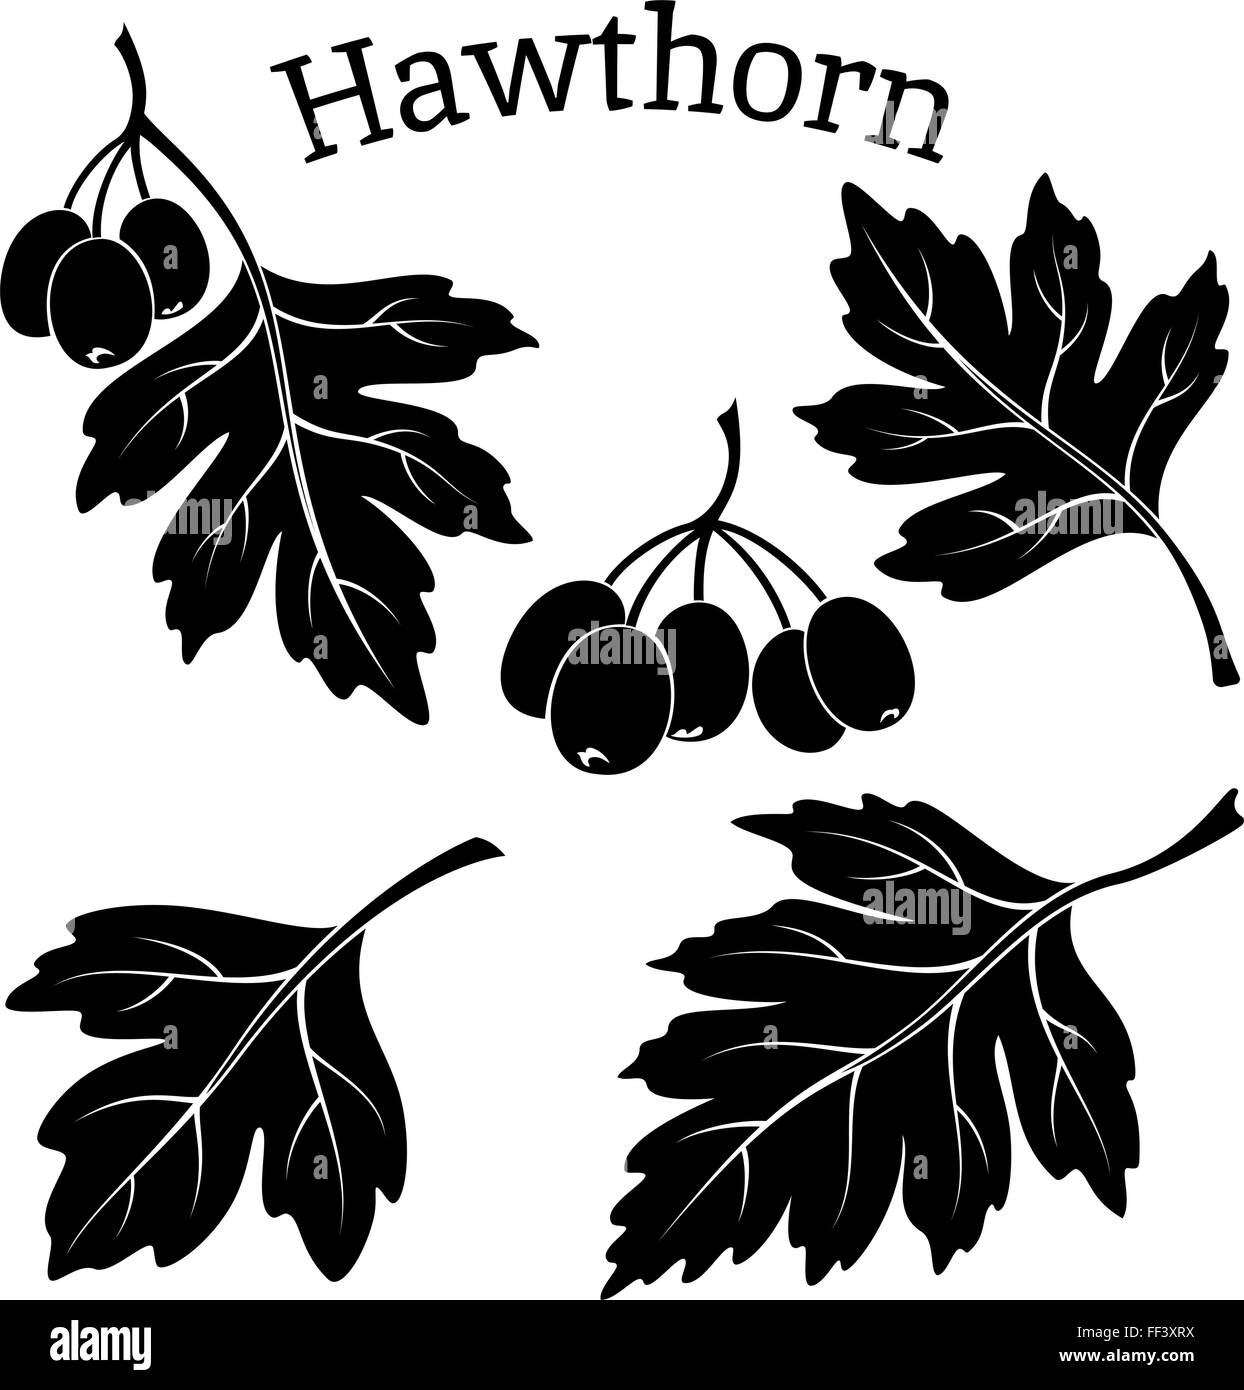 Hawthorn Leaves and Fruits Pictograms - Stock Image